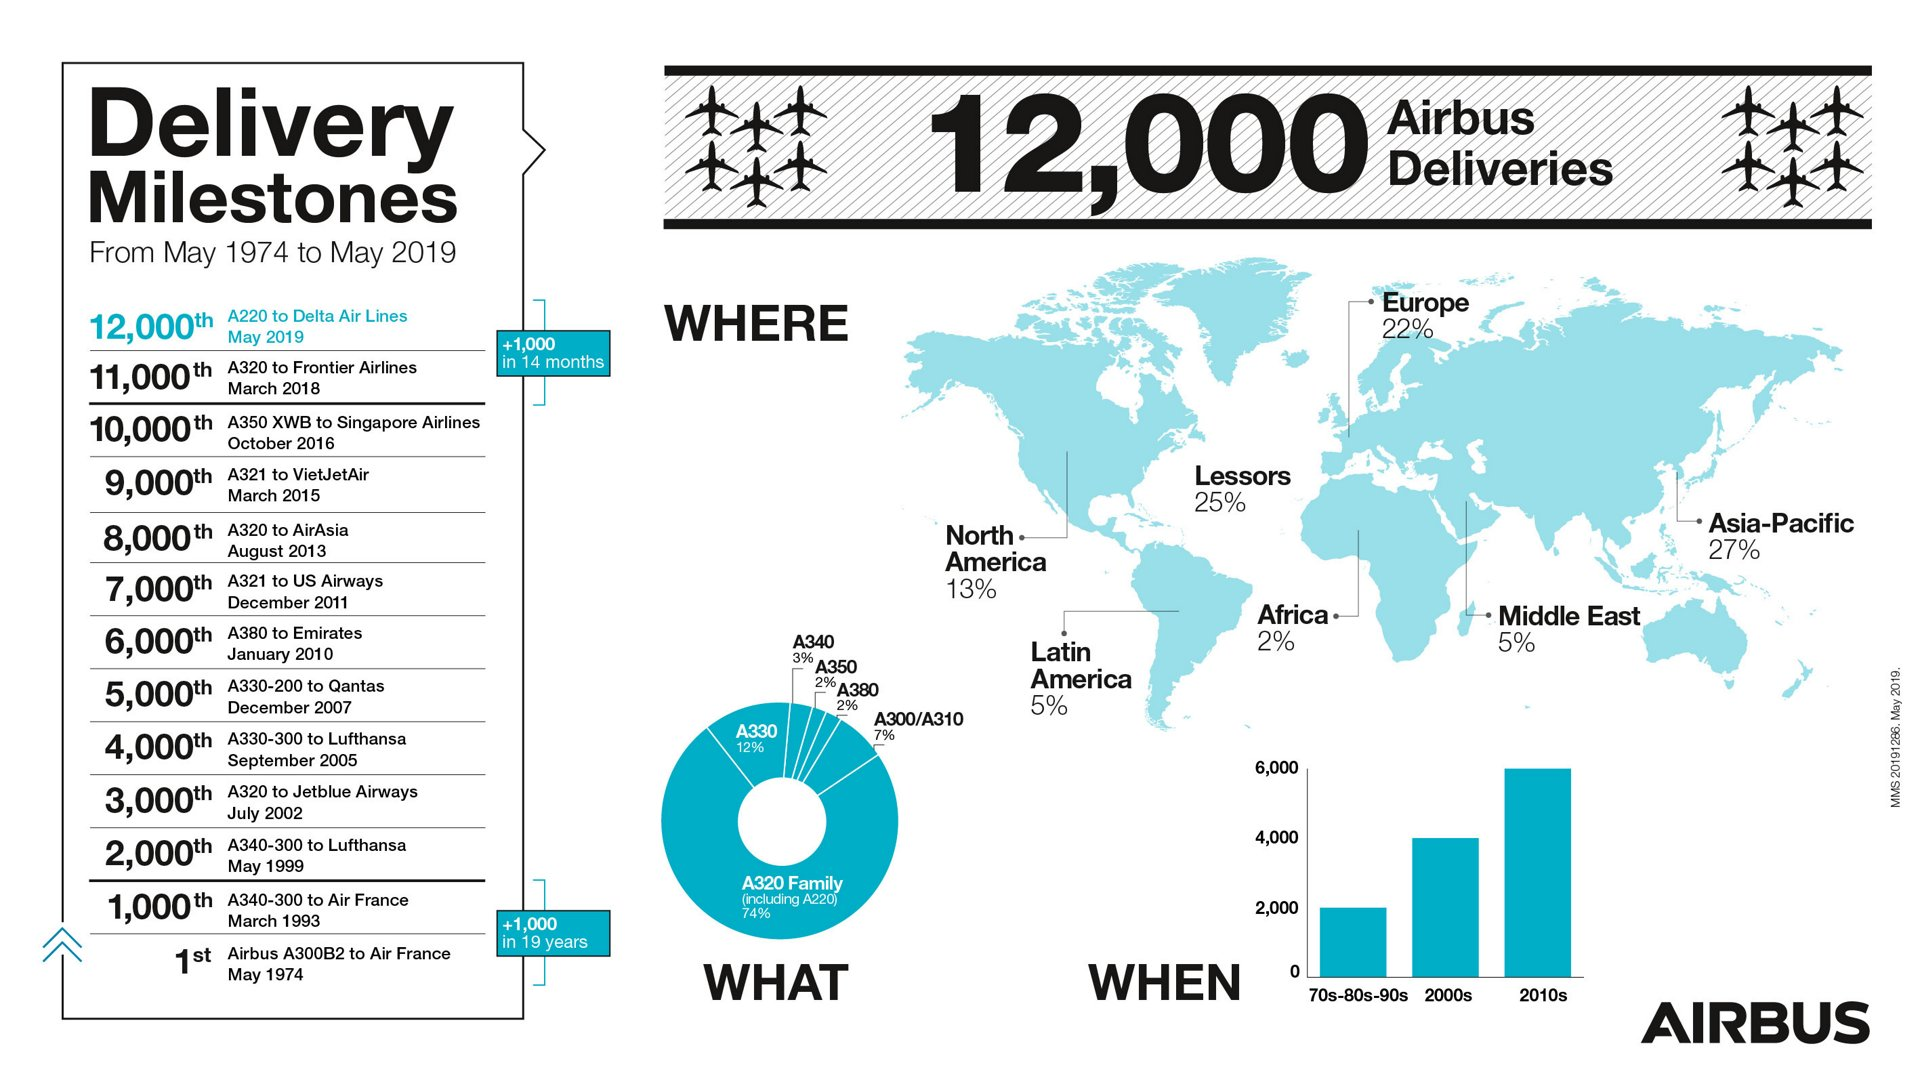 Airbus delivery milestones for its family of commercial jetliners, and the geographic distribution of these aircraft, are highlighted in an infographic